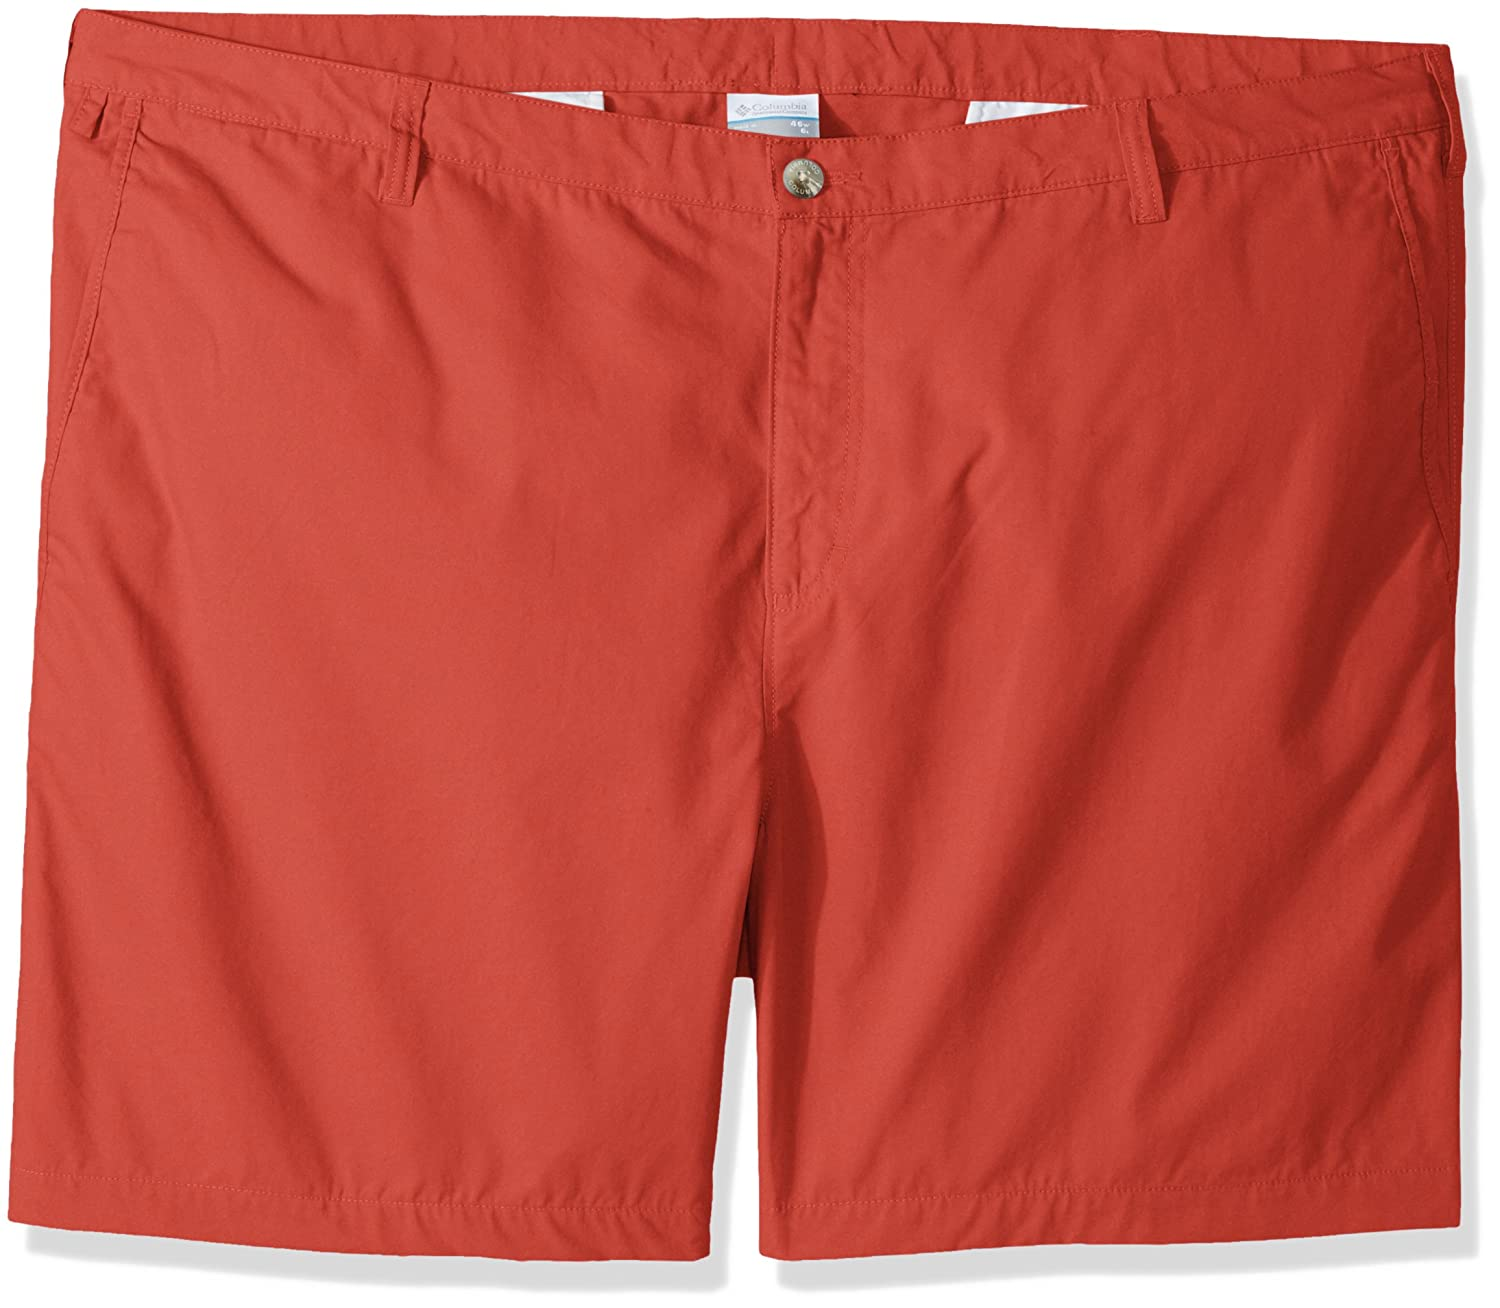 Rouge sunset Taille 50 x 6 Columbia pour Homme Bonehead II Tall courte